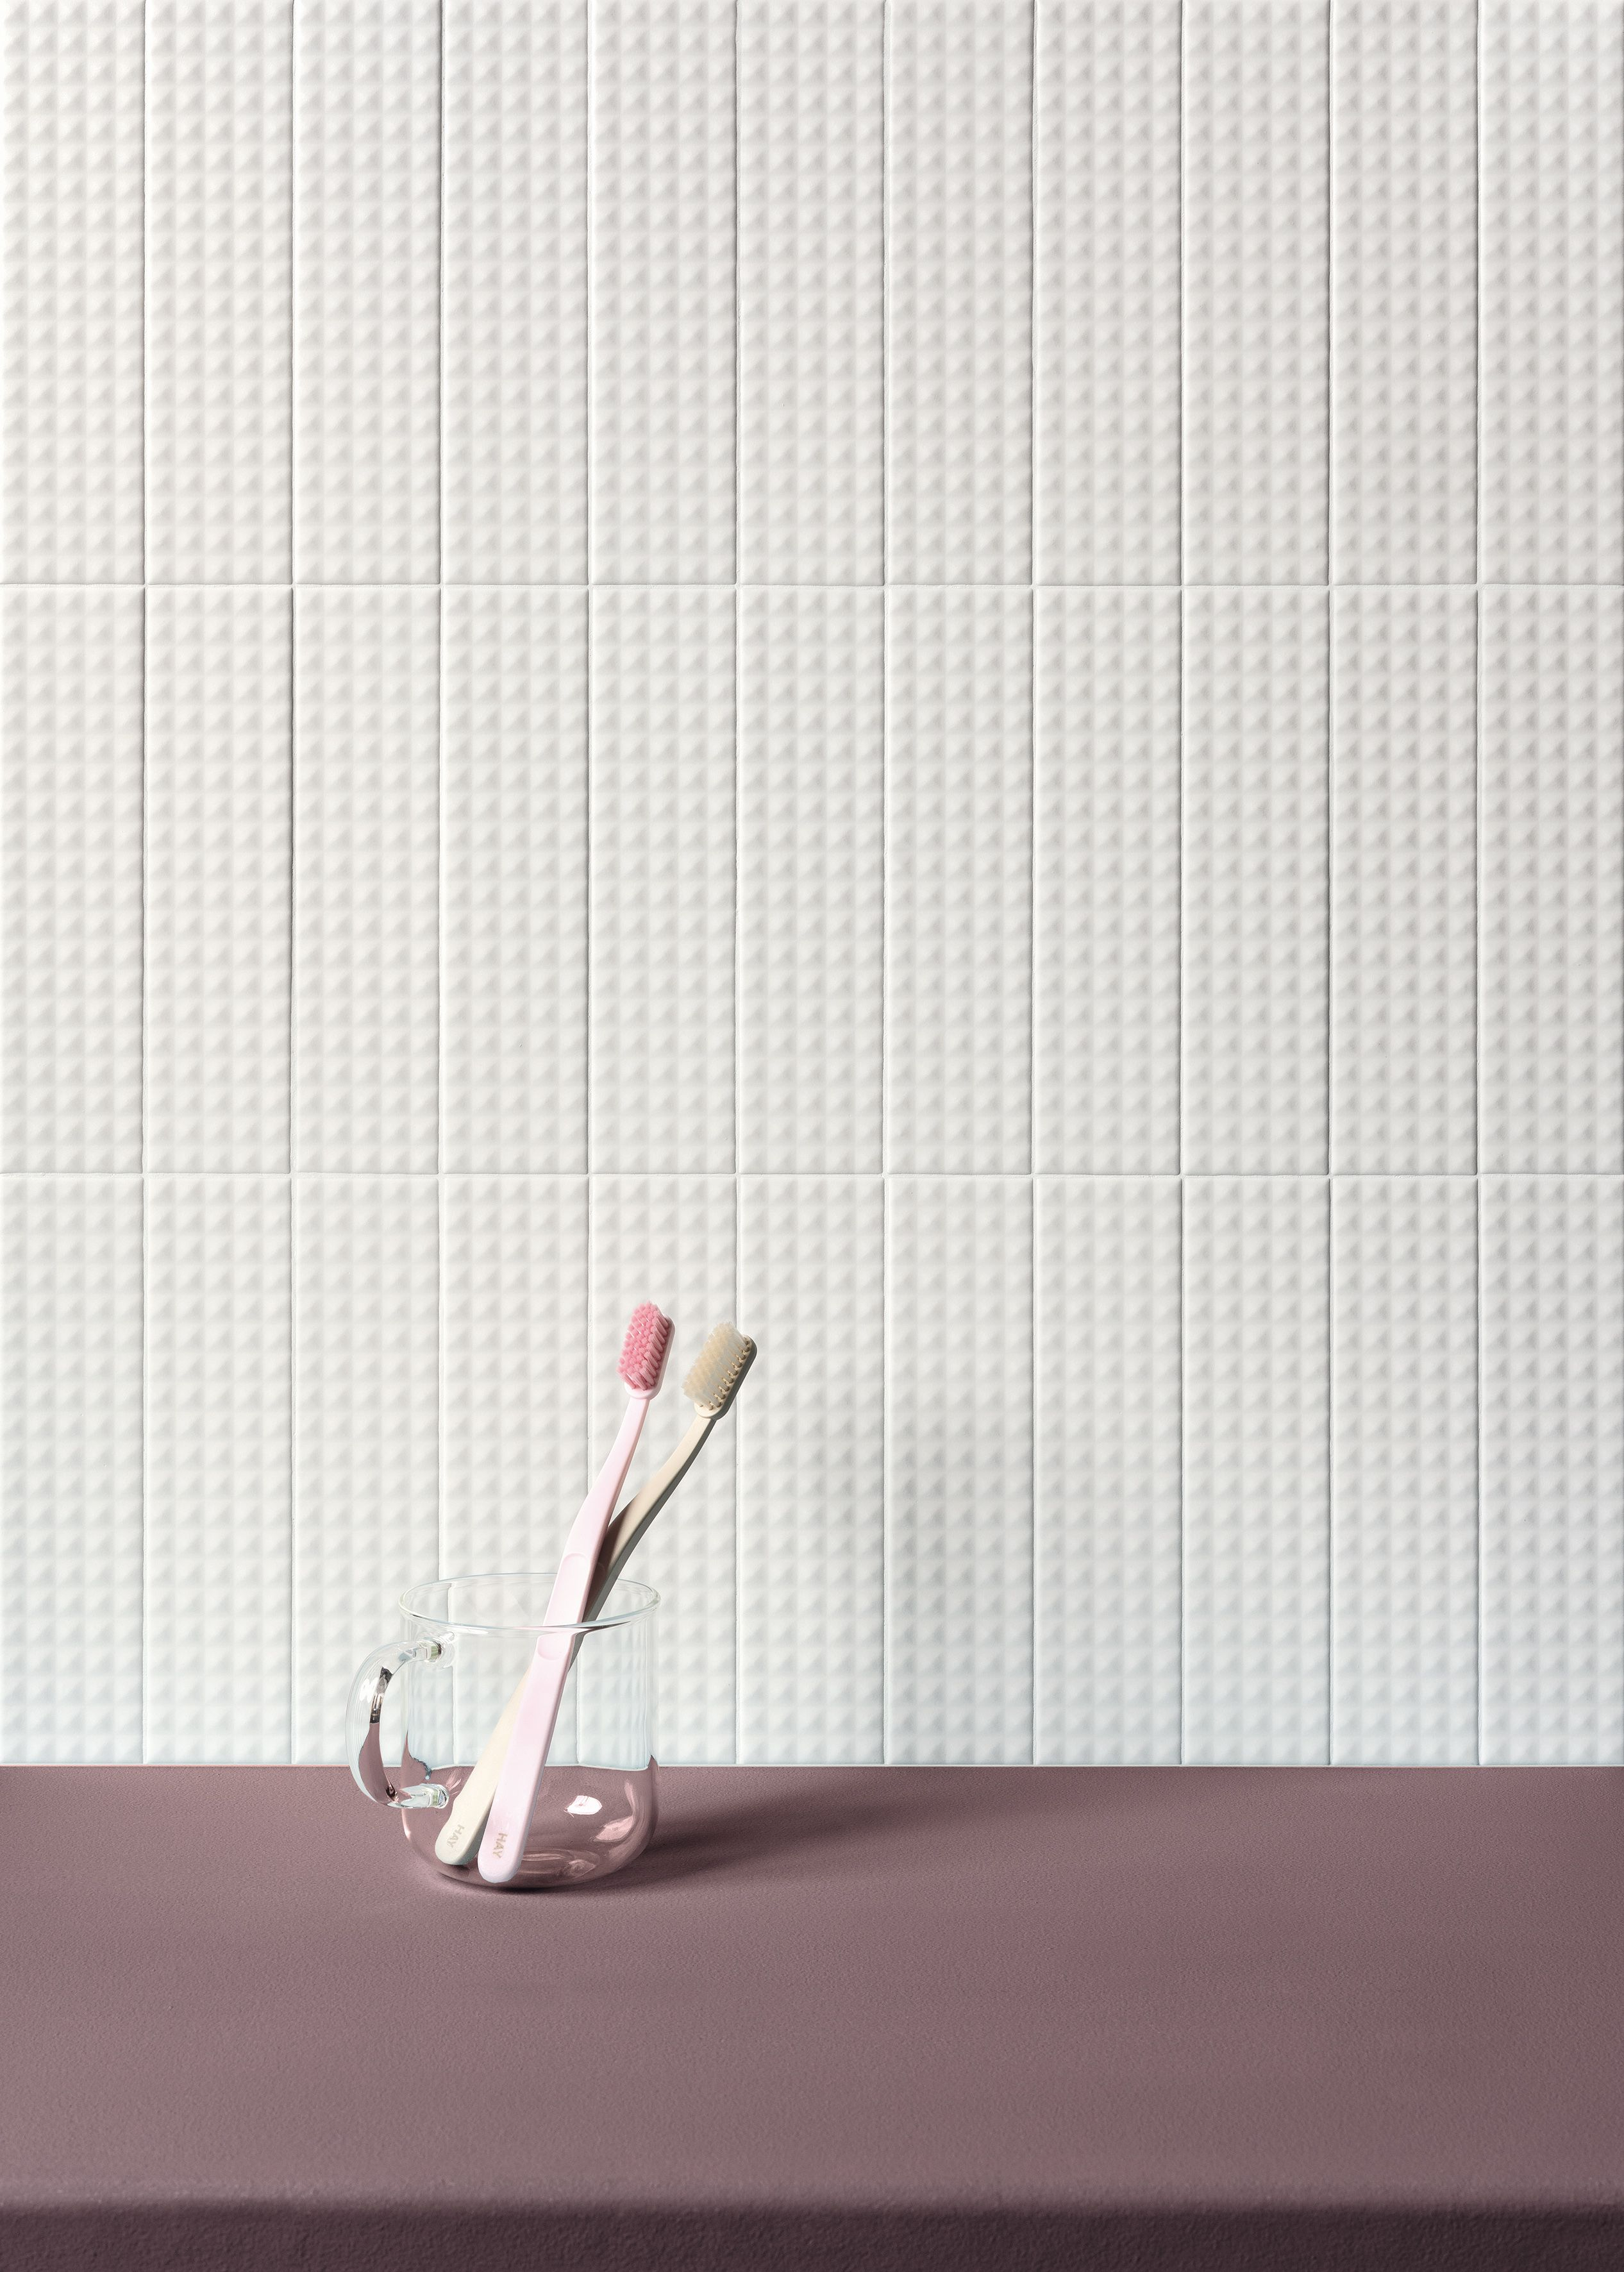 Surface Carrelage Mural Collection Biscuit Carrelage Mural Fond D écran Téléphone Carrelage